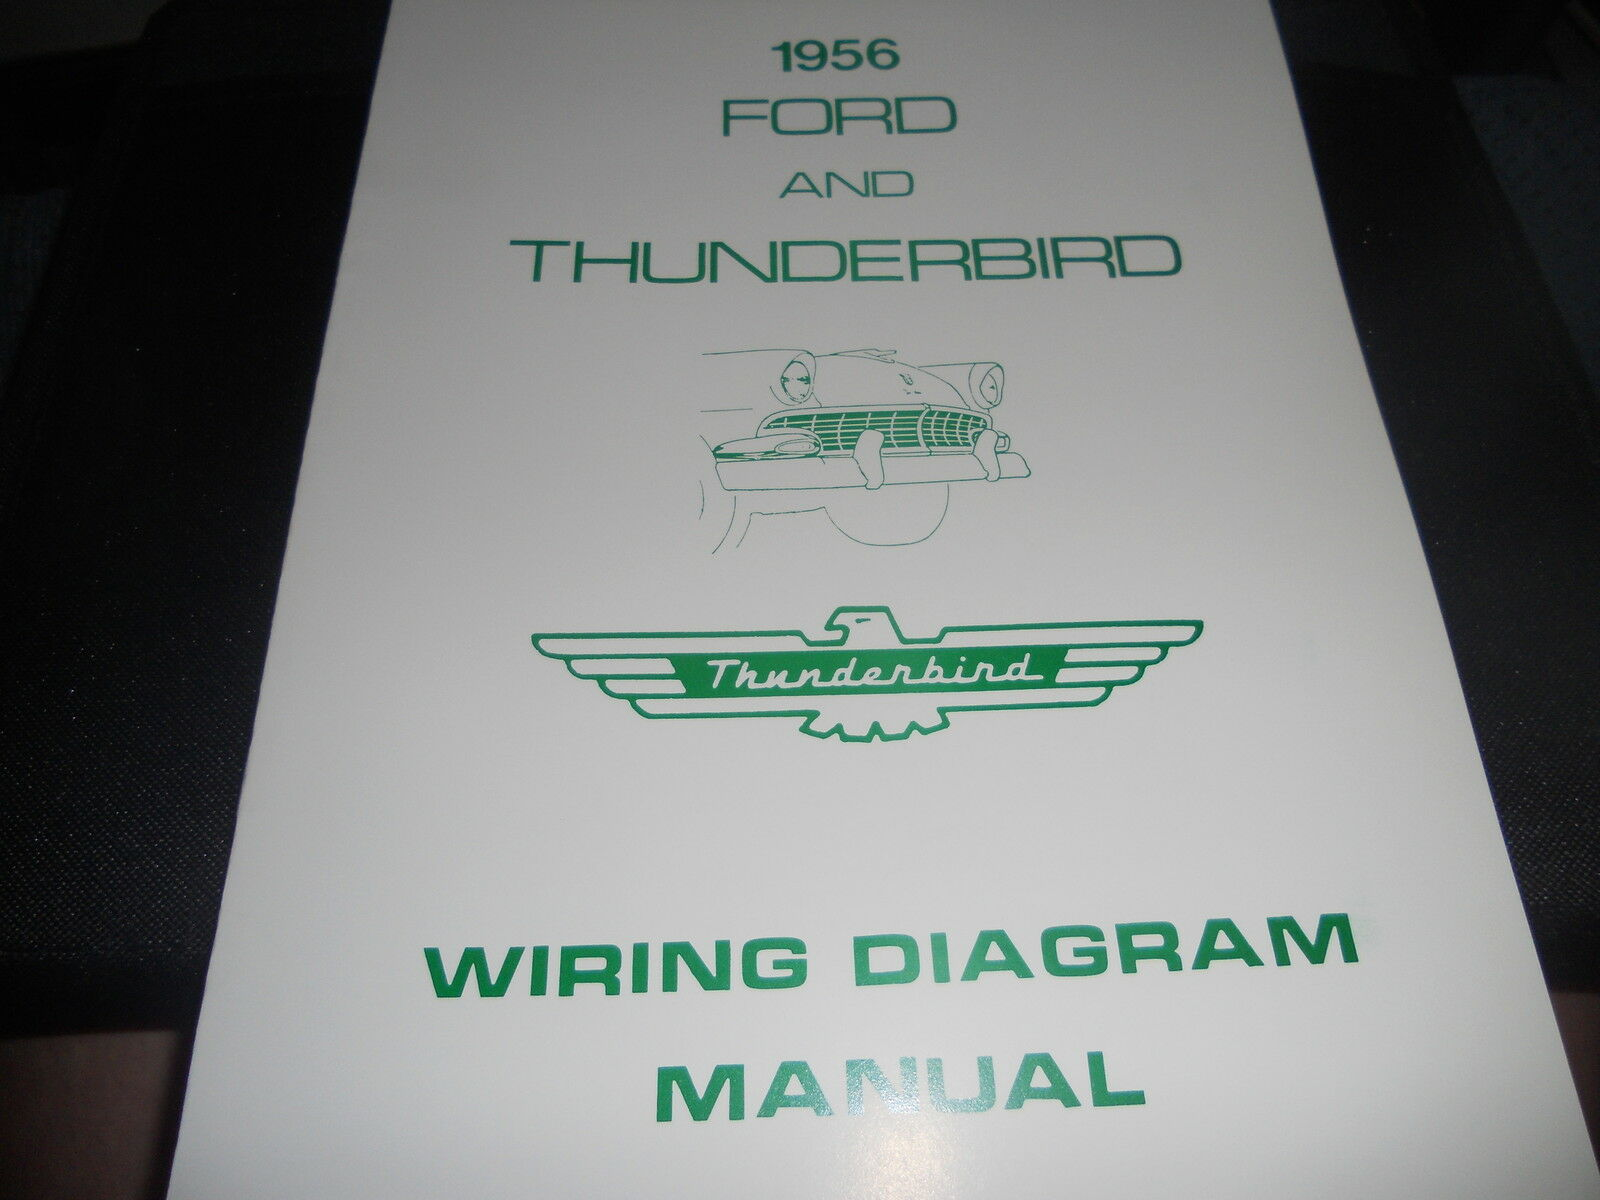 1956 Ford Thunderbird TBird Wiring Manual 1 of 1 See More